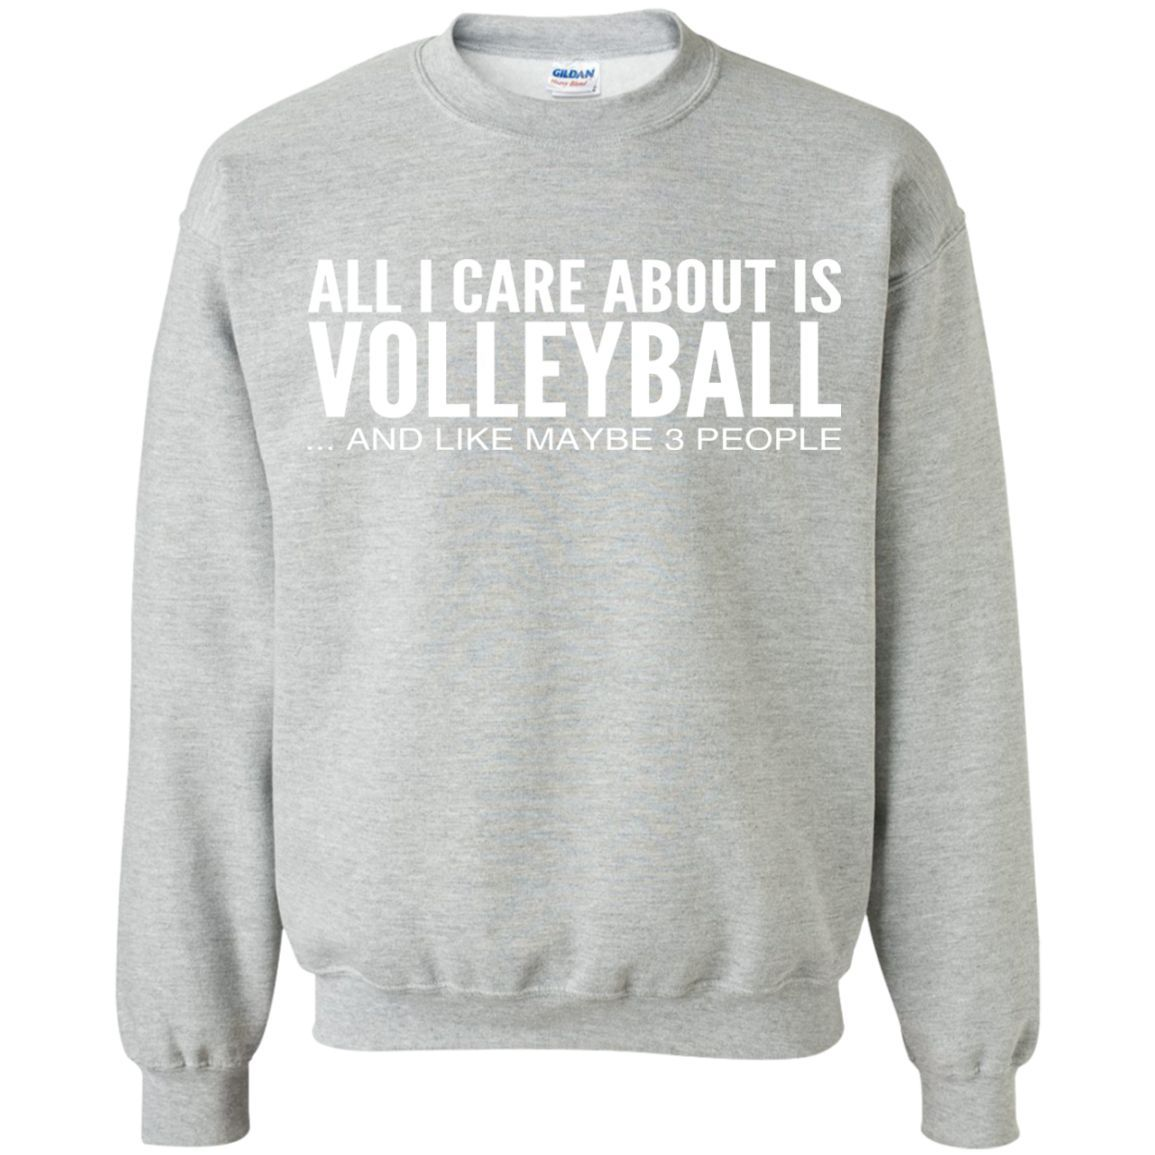 All I Care About Is Volleyball And Like Maybe 3 People Sweatshirts Sweatshirts Hoodie Shirt Pullover Sweatshirt